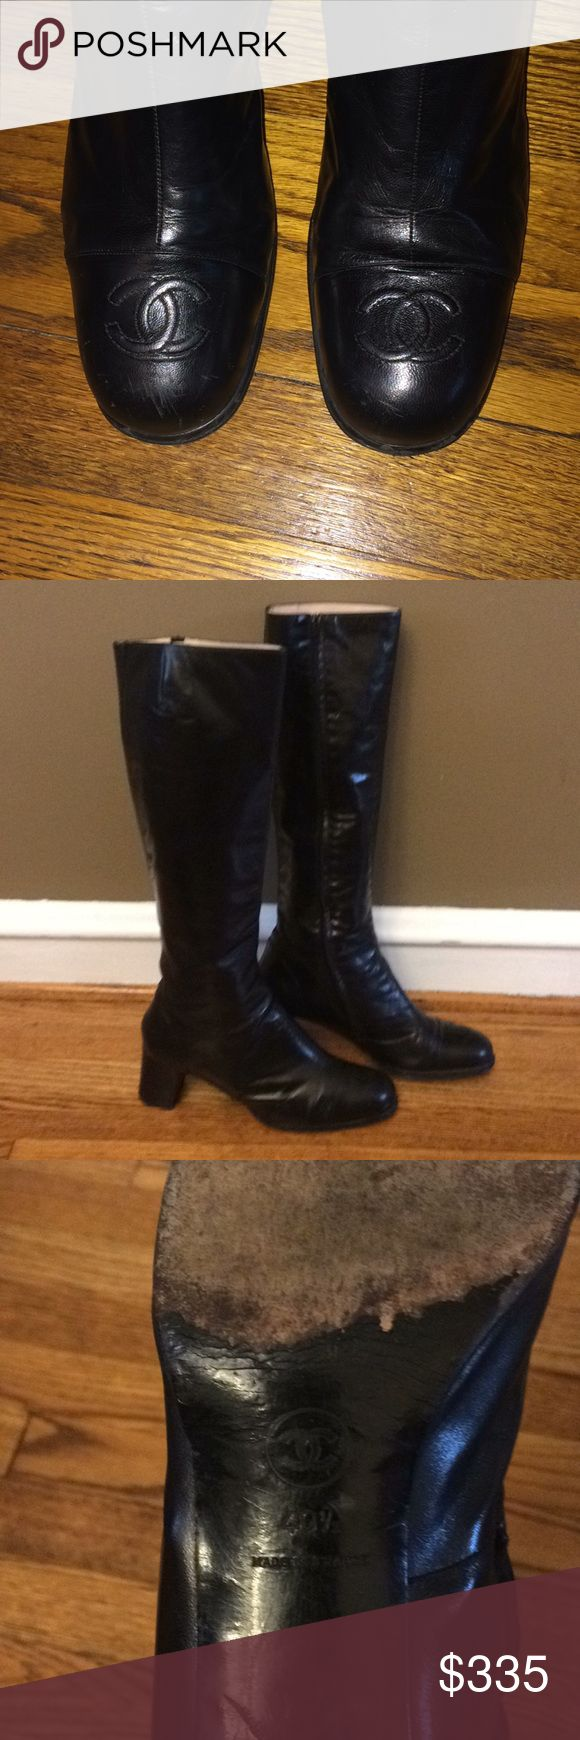 AUTHENTIC CHANEL💕 black leather boots Beautiful, classic black leather Chanel knee boots. Double C's on toe. Not for those with a wide calf. Worn, but with a lot of life remaining. Heels have some scratches- shown in pics. Price reflects wear. CHANEL Shoes Heeled Boots